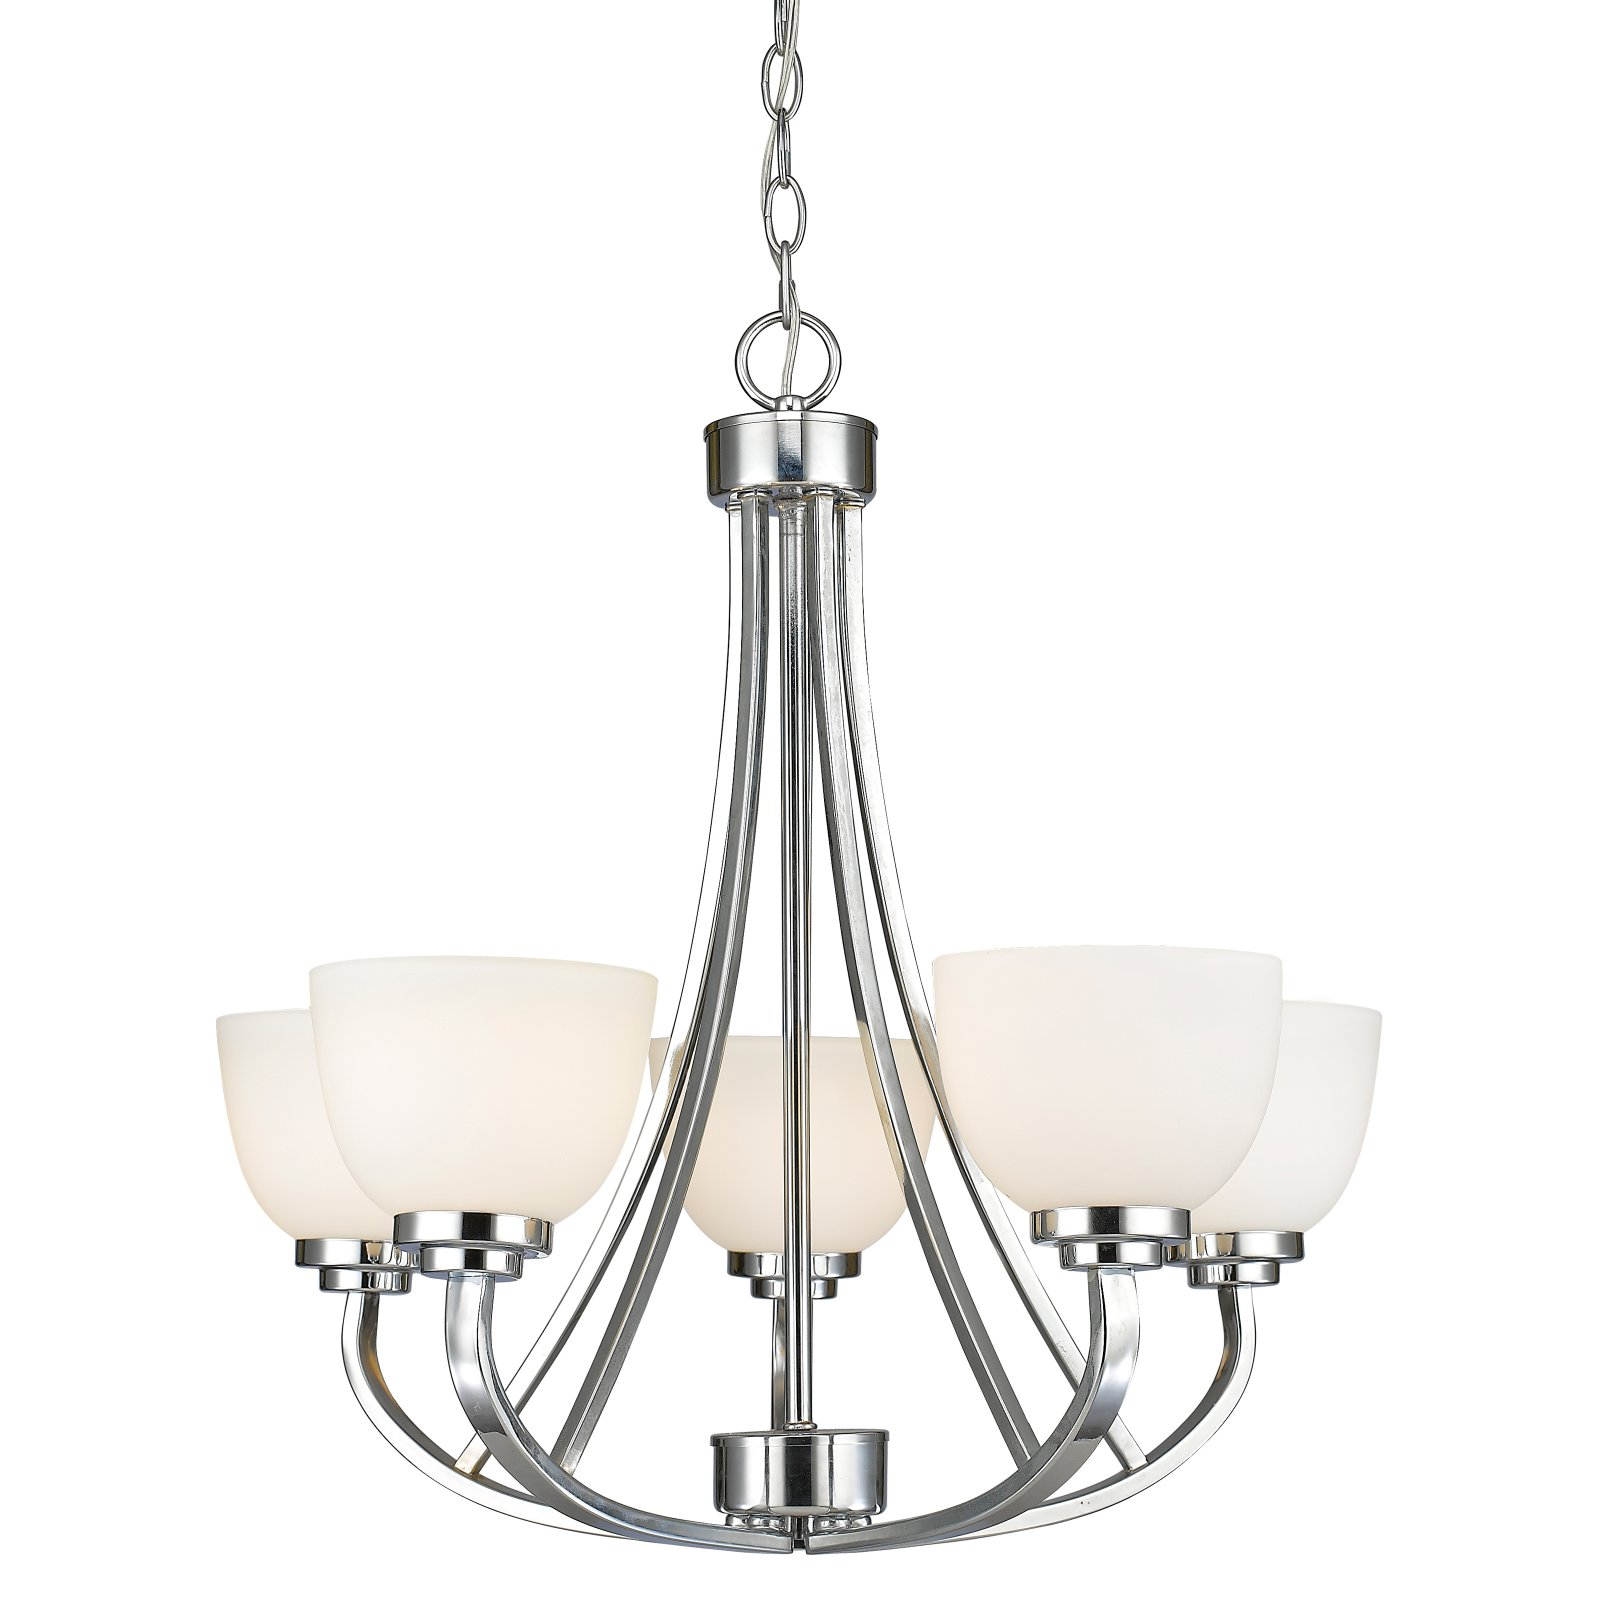 Z-Lite Ashton 5-Light Chandelier, Bronze by Z-Lite